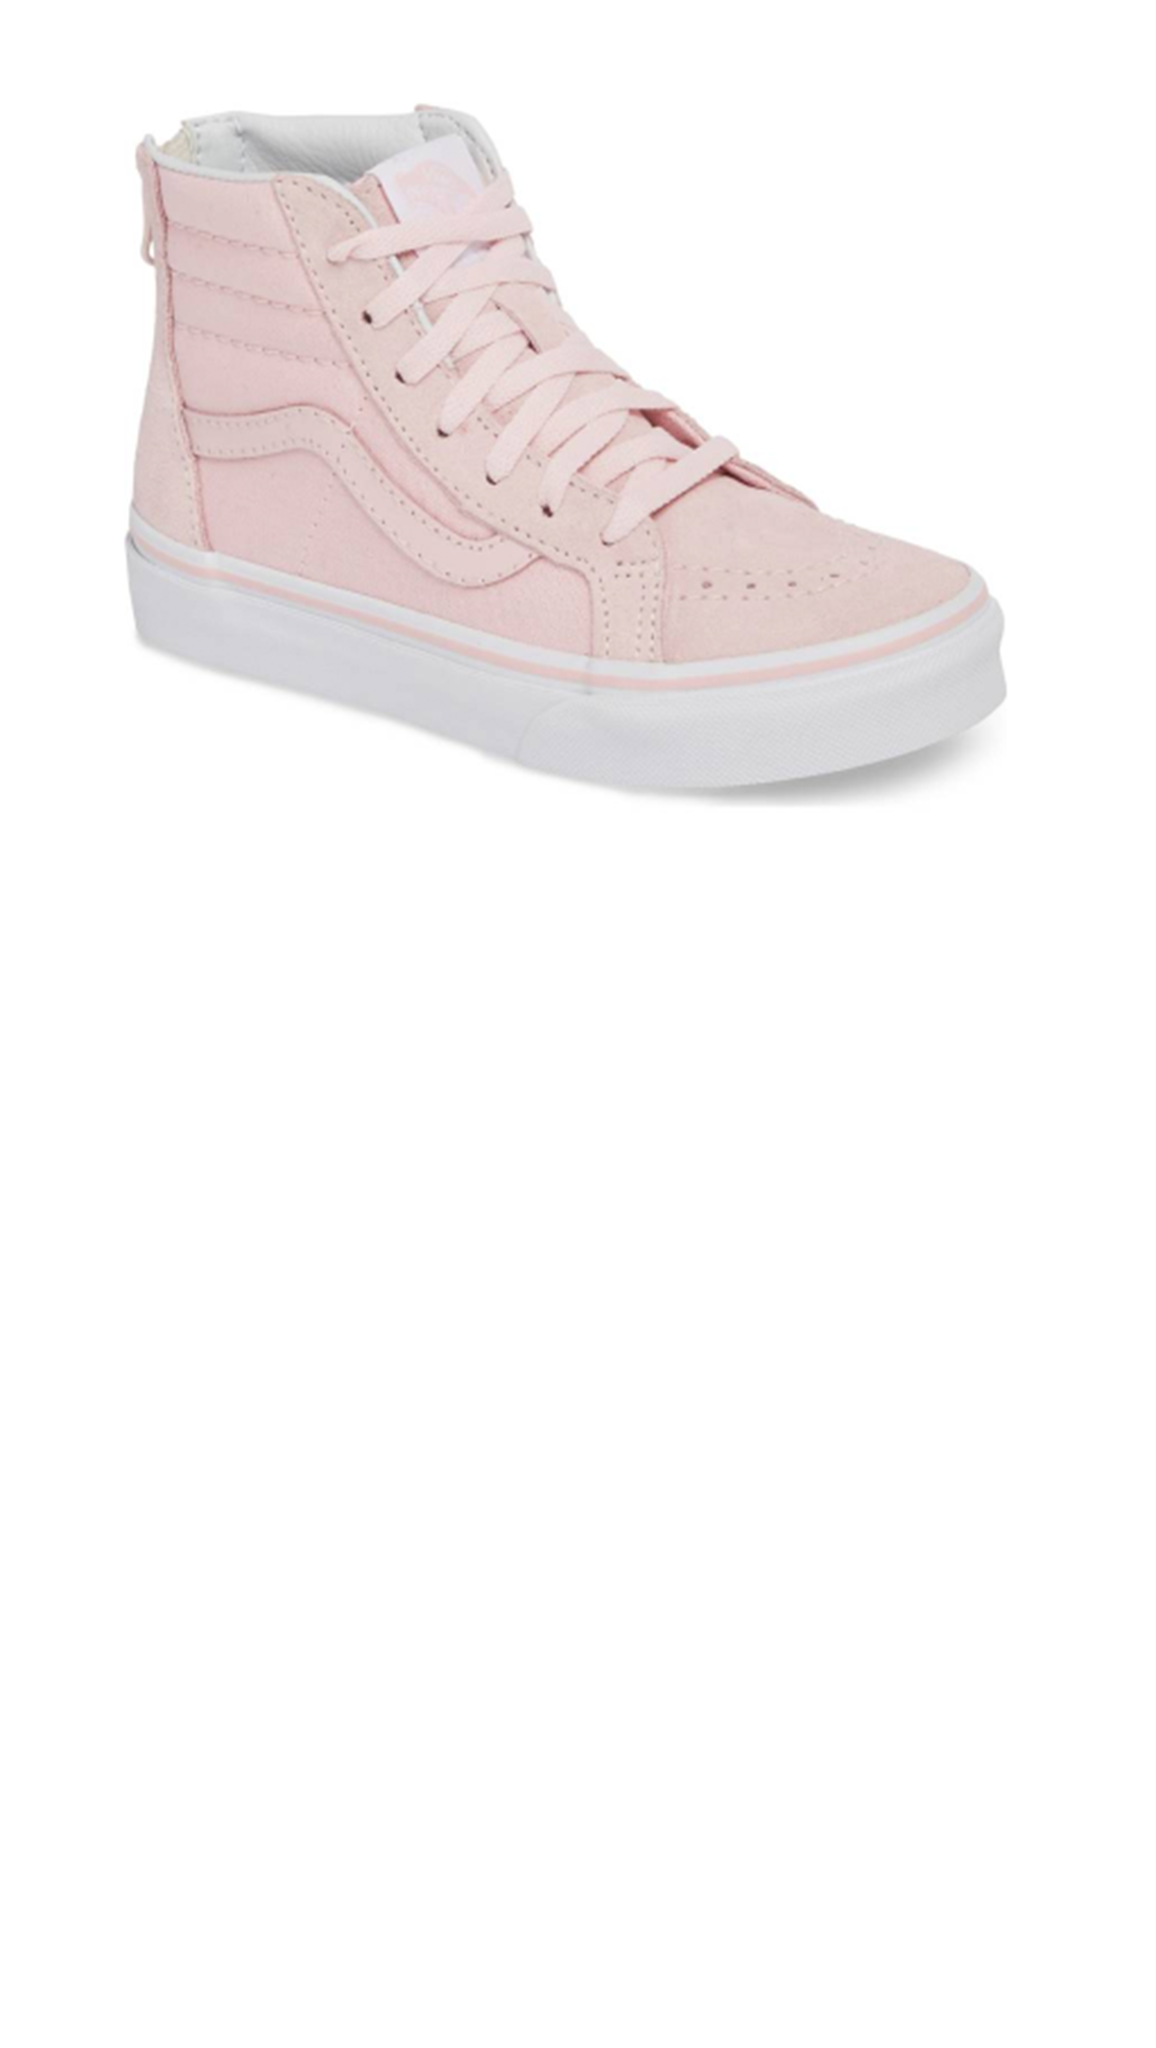 light pink high top girls sneaker with pink laces and white soles